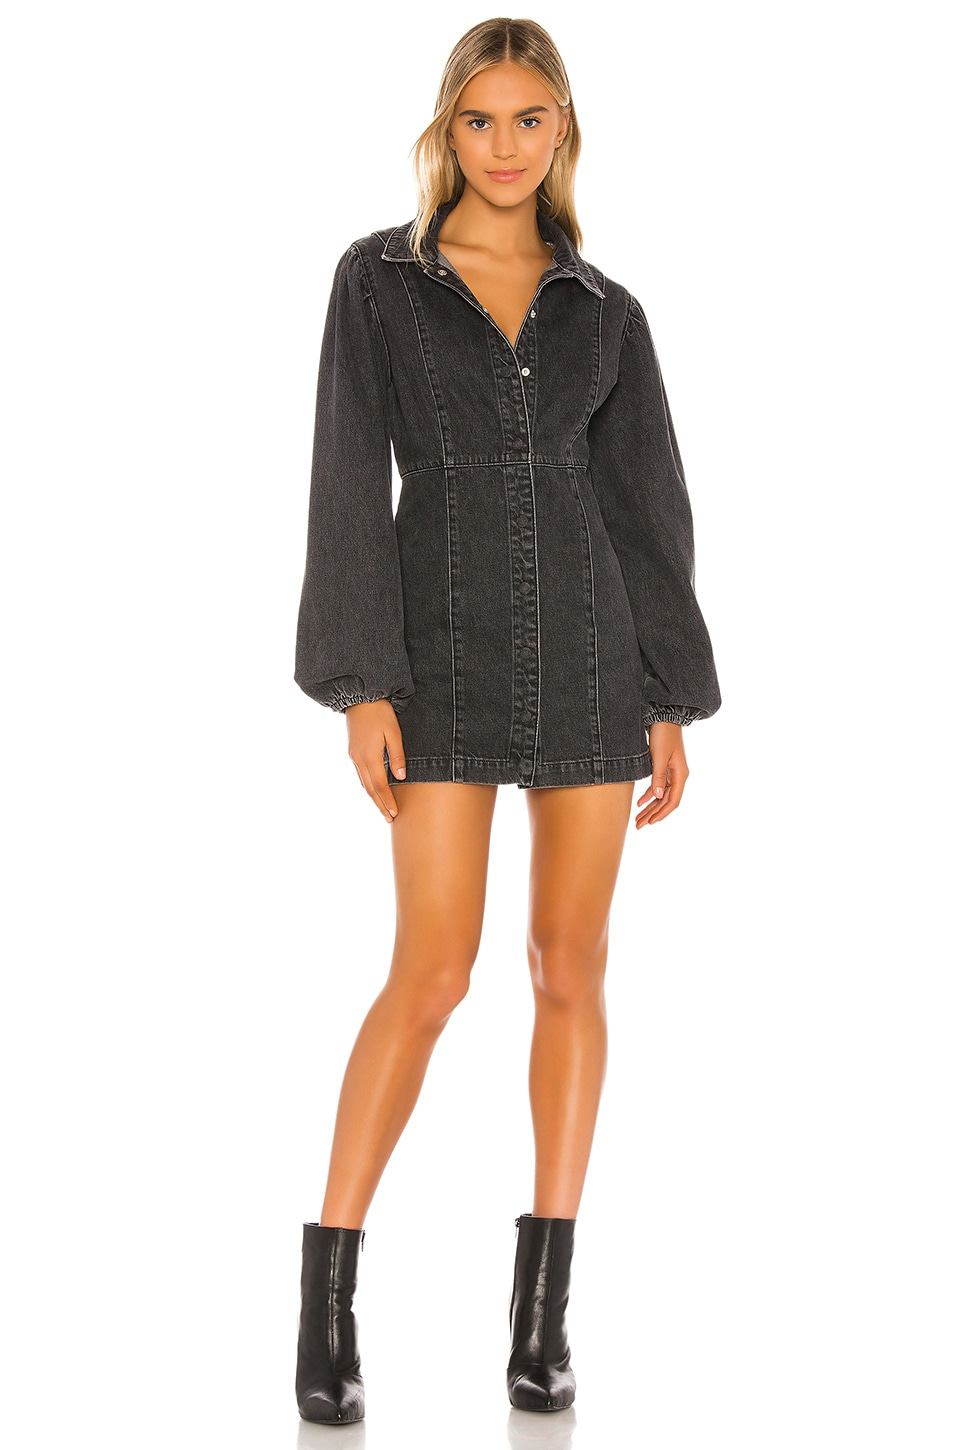 Free People Mia Denim Mini Dress in Black